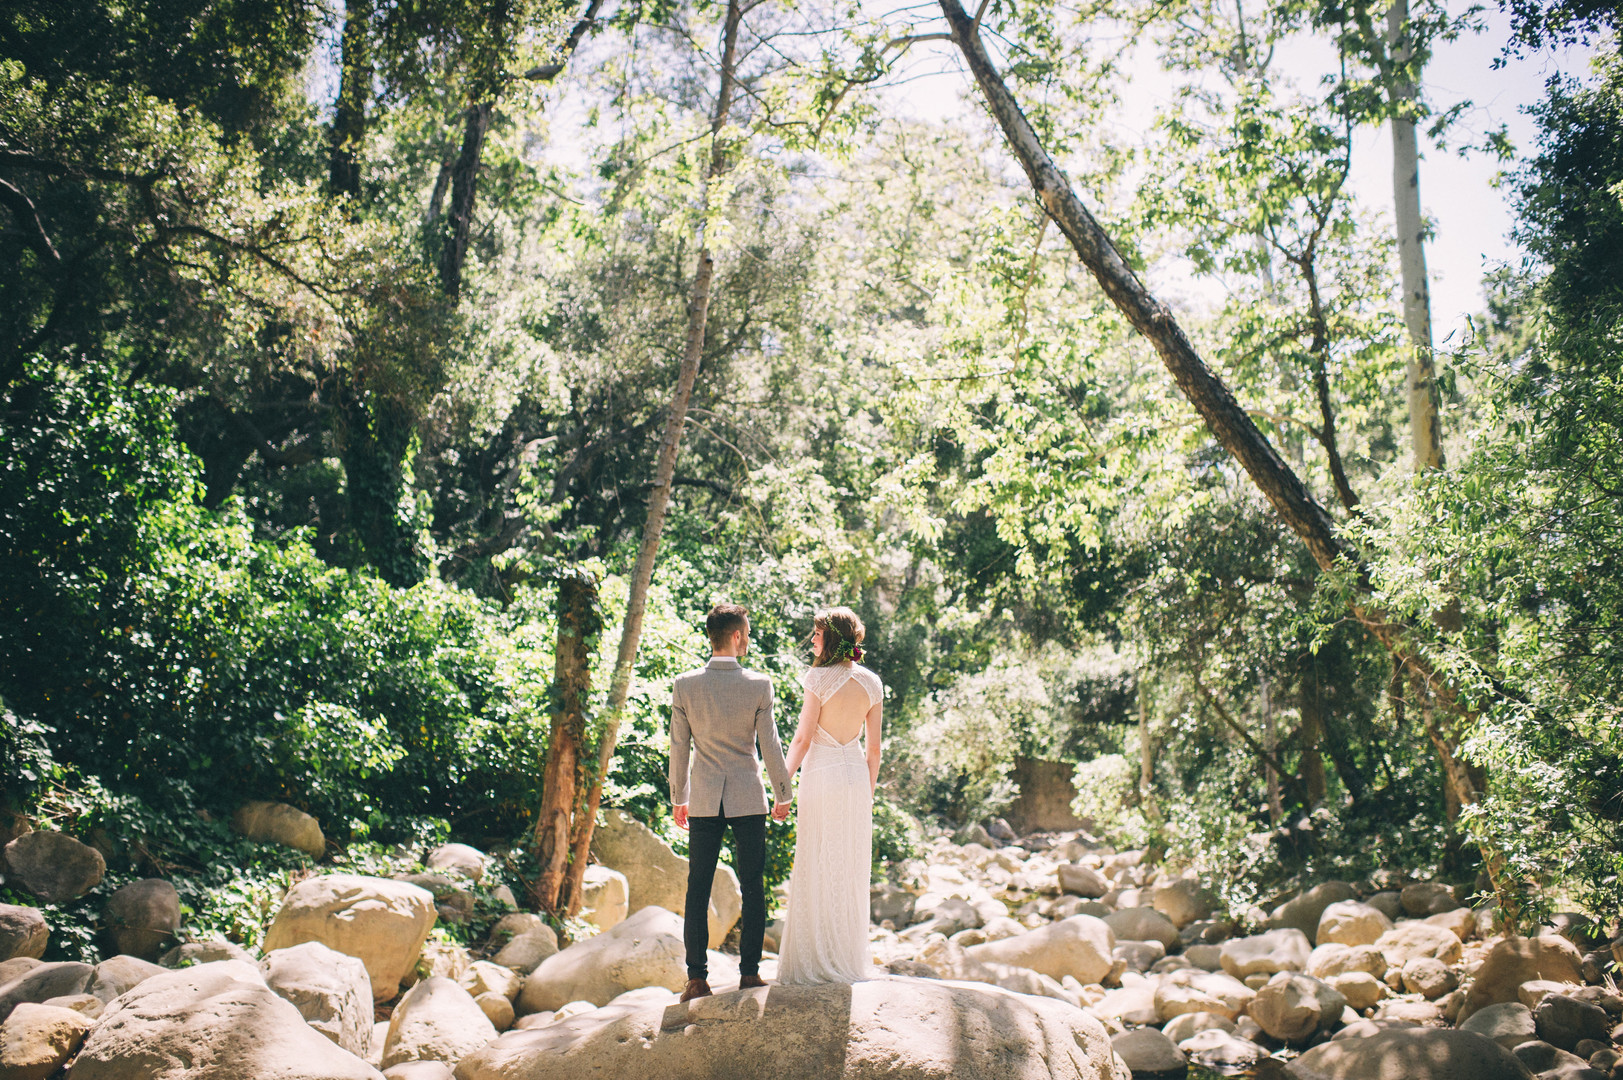 www.santabarbarawedding.com | Sarah Katherine Davis Photography | Santa Barbara Museum of Natural History | Wild Heart Events | BHLDN | Bride and Groom in the Forest